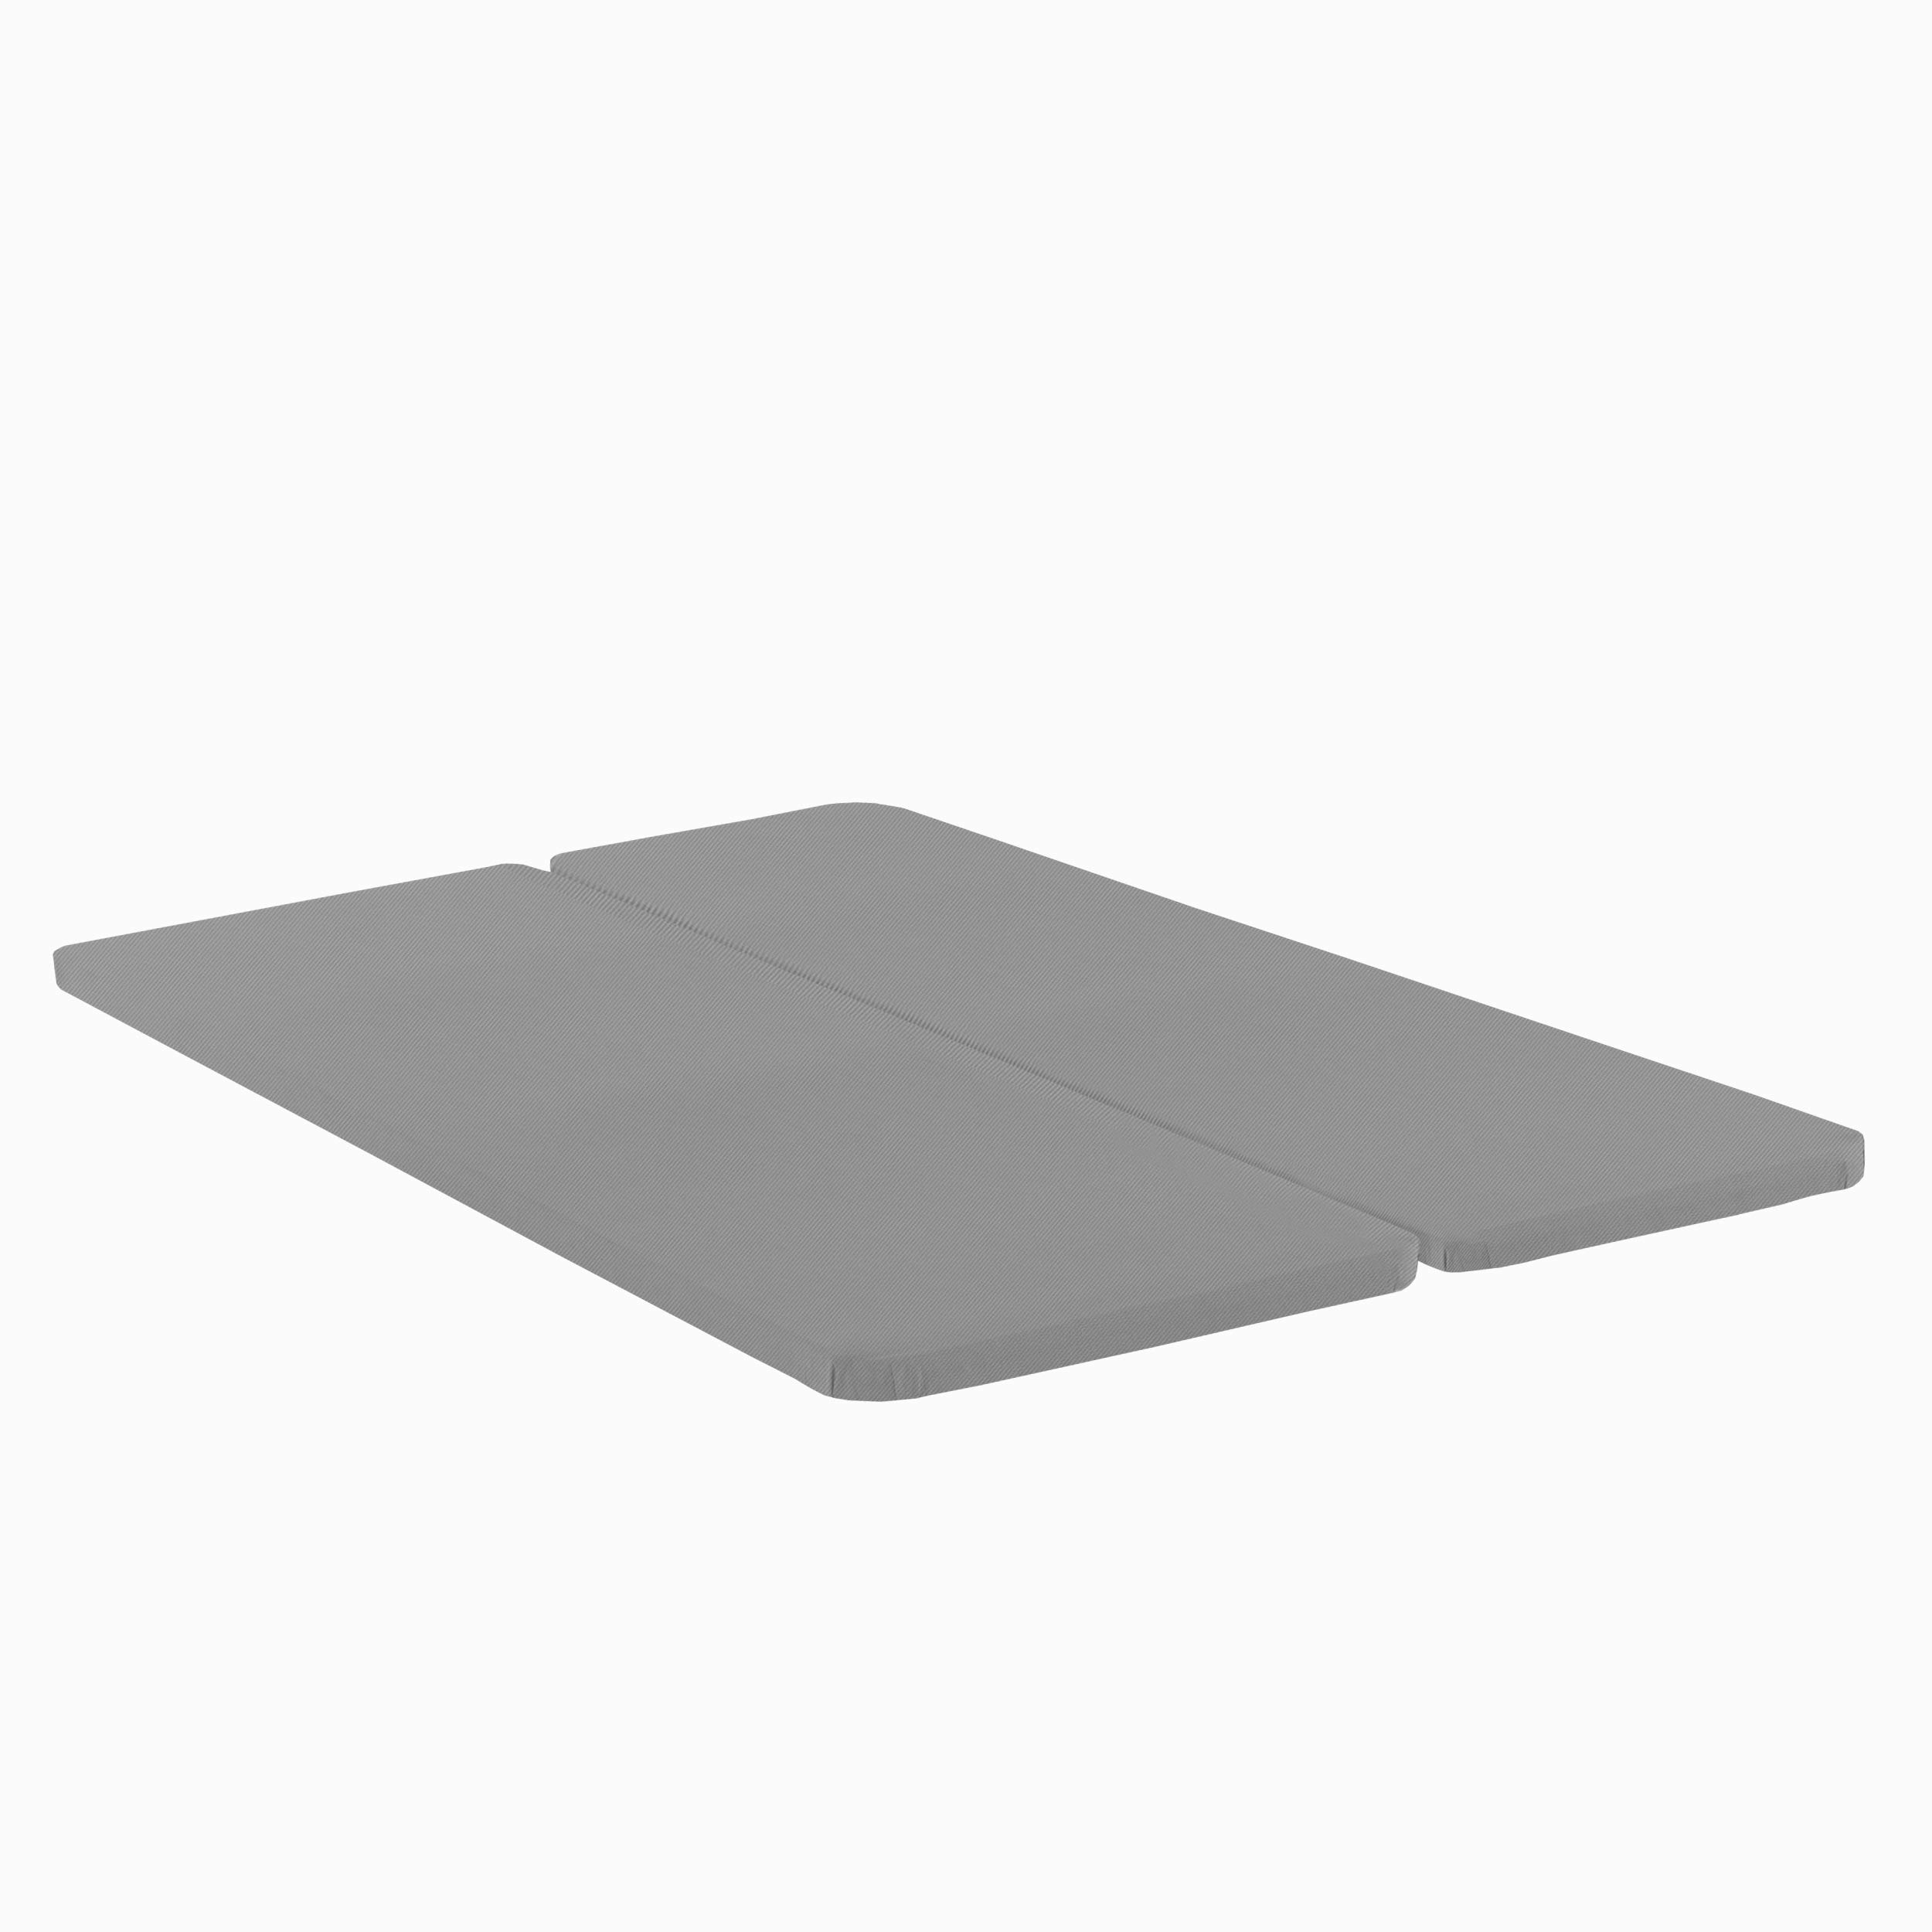 Spring Sleep, 1.5-Inch Fully Assembled Foundation Bunkie Board, King Size, Grey by Spring Sleep (Image #4)